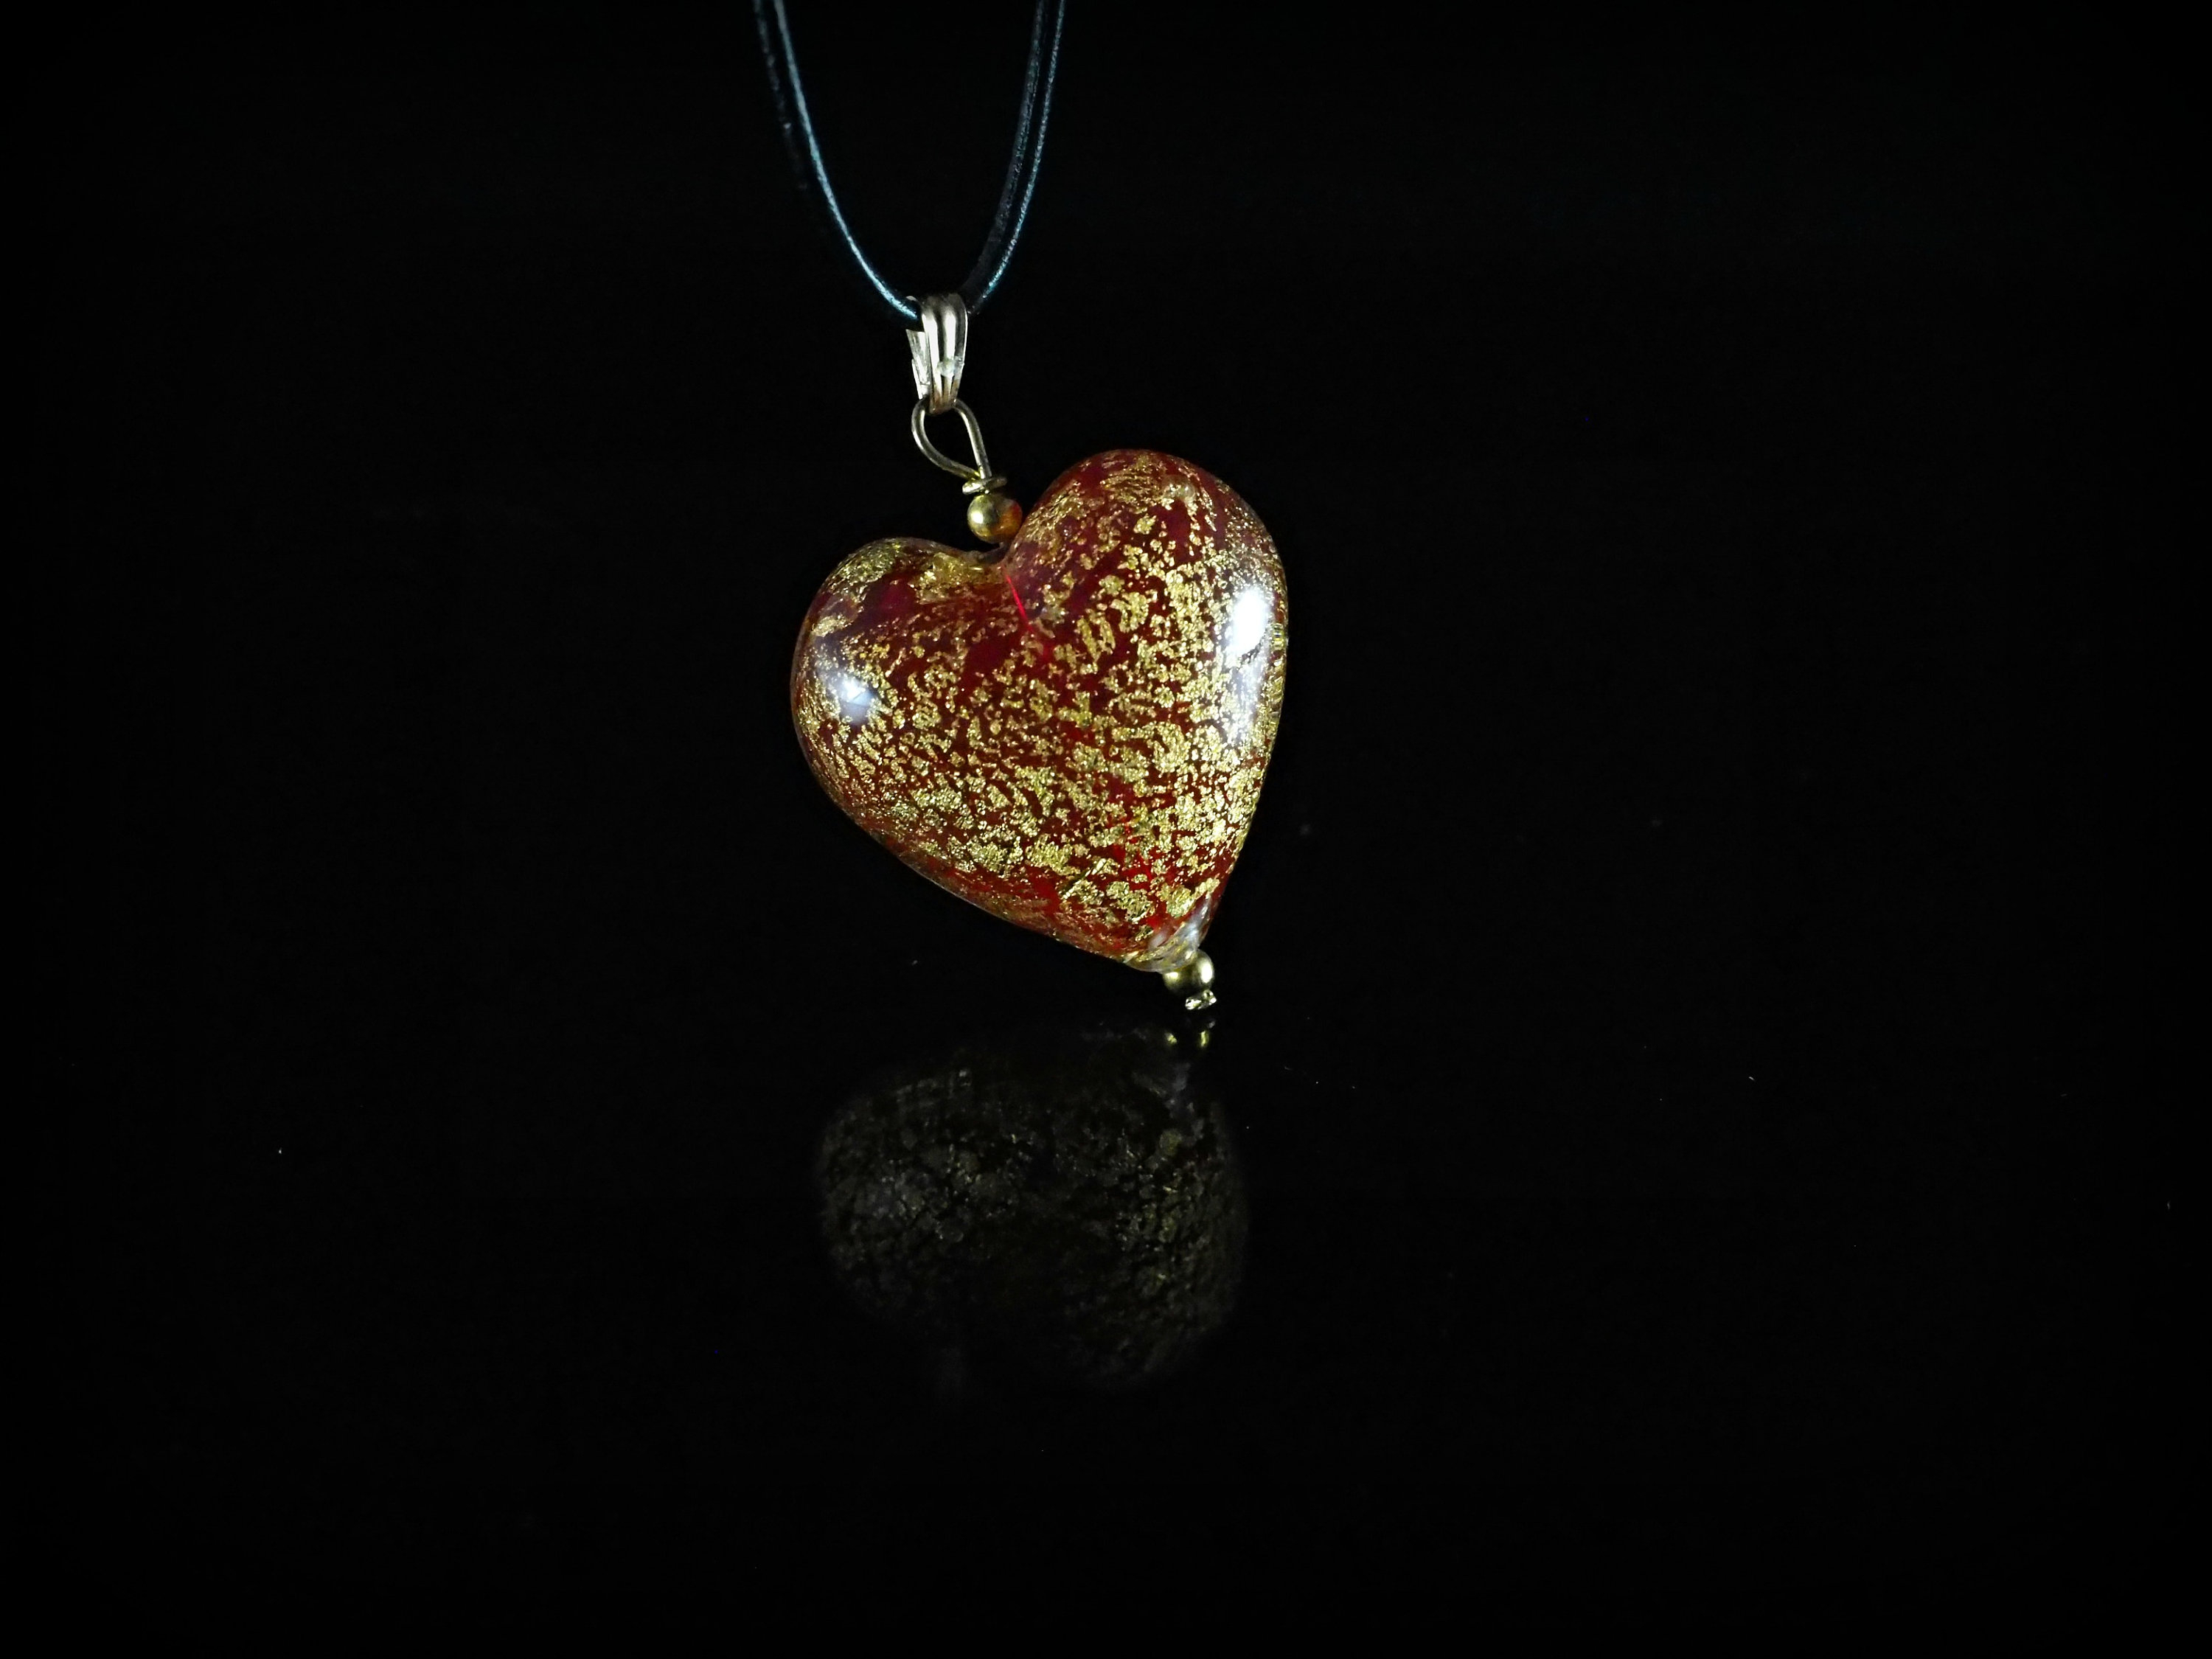 Leaf Pendant Necklace Red Heart Murano Glass Gold Plated Leather Valentine's Day Regarding Recent Pink Murano Glass Leaf Pendant Necklaces (View 4 of 25)